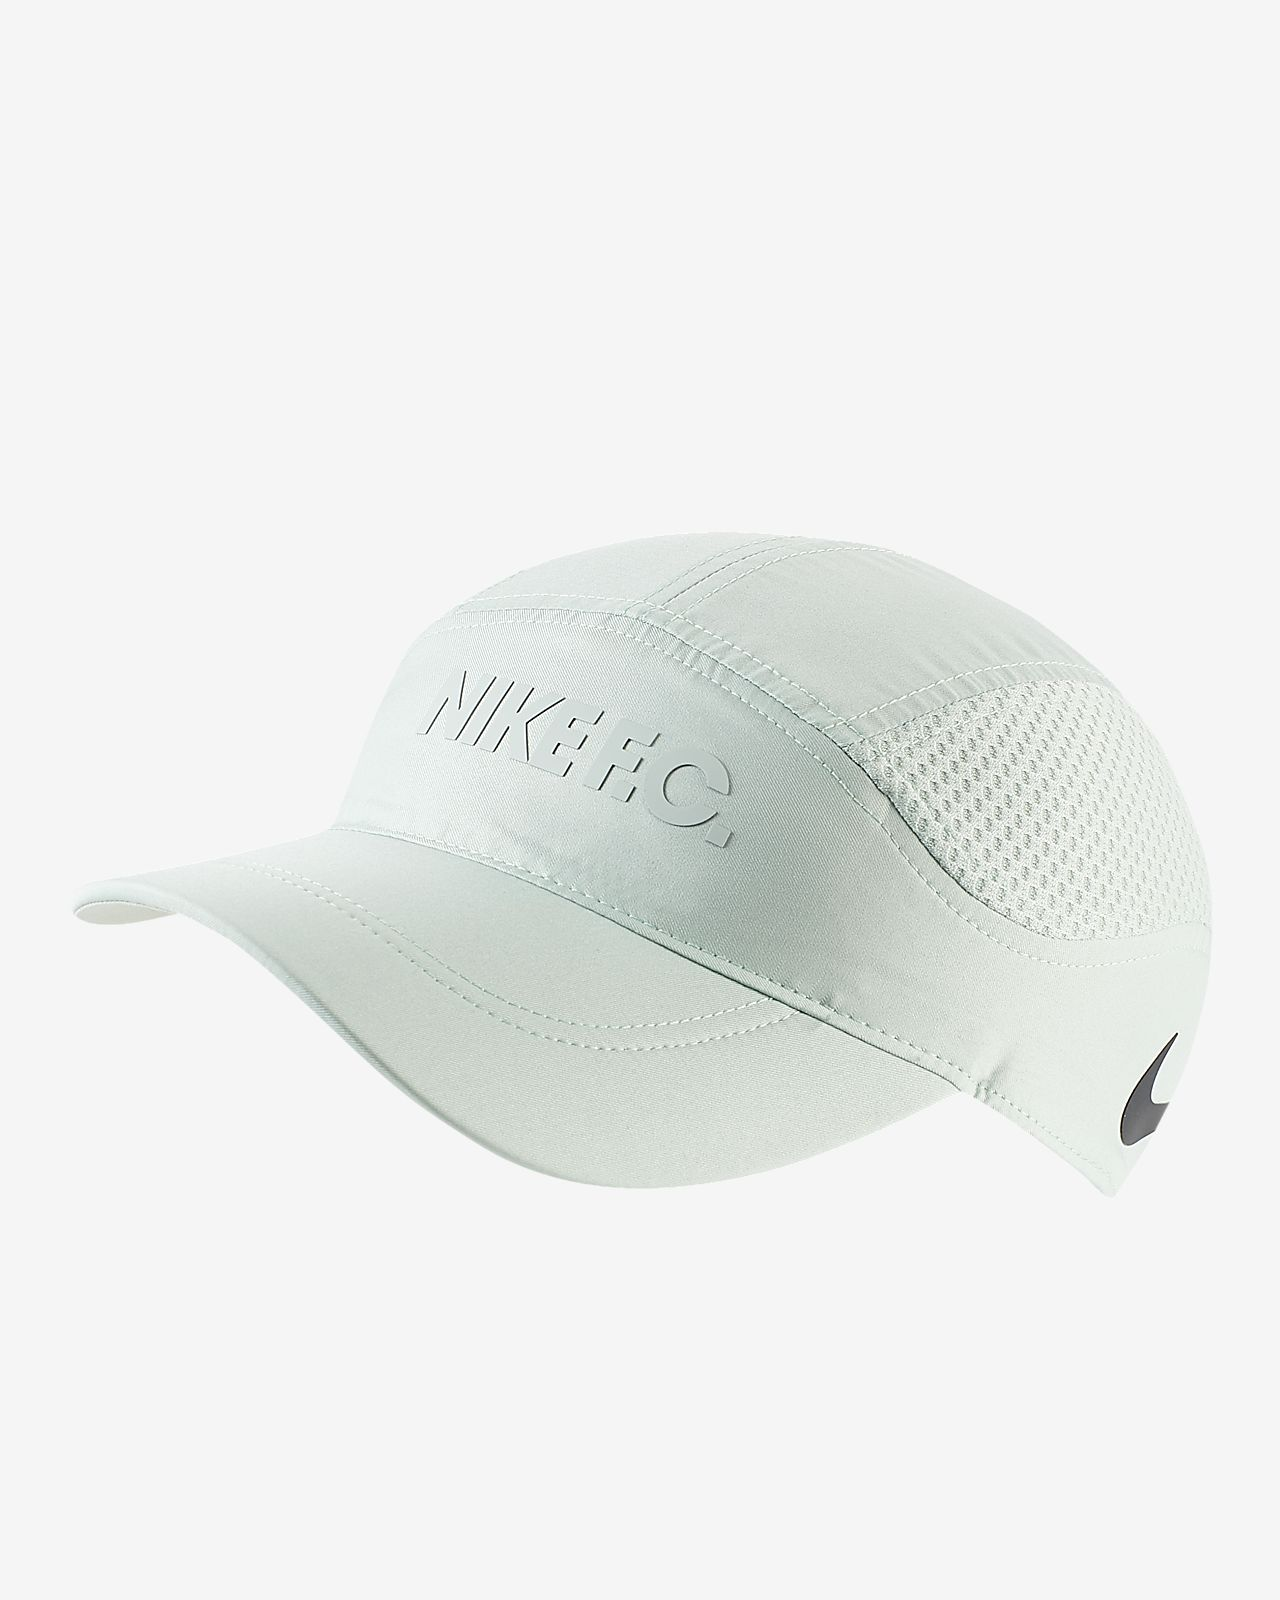 Nike F.C. AeroBill Tailwind Adjustable Football Hat